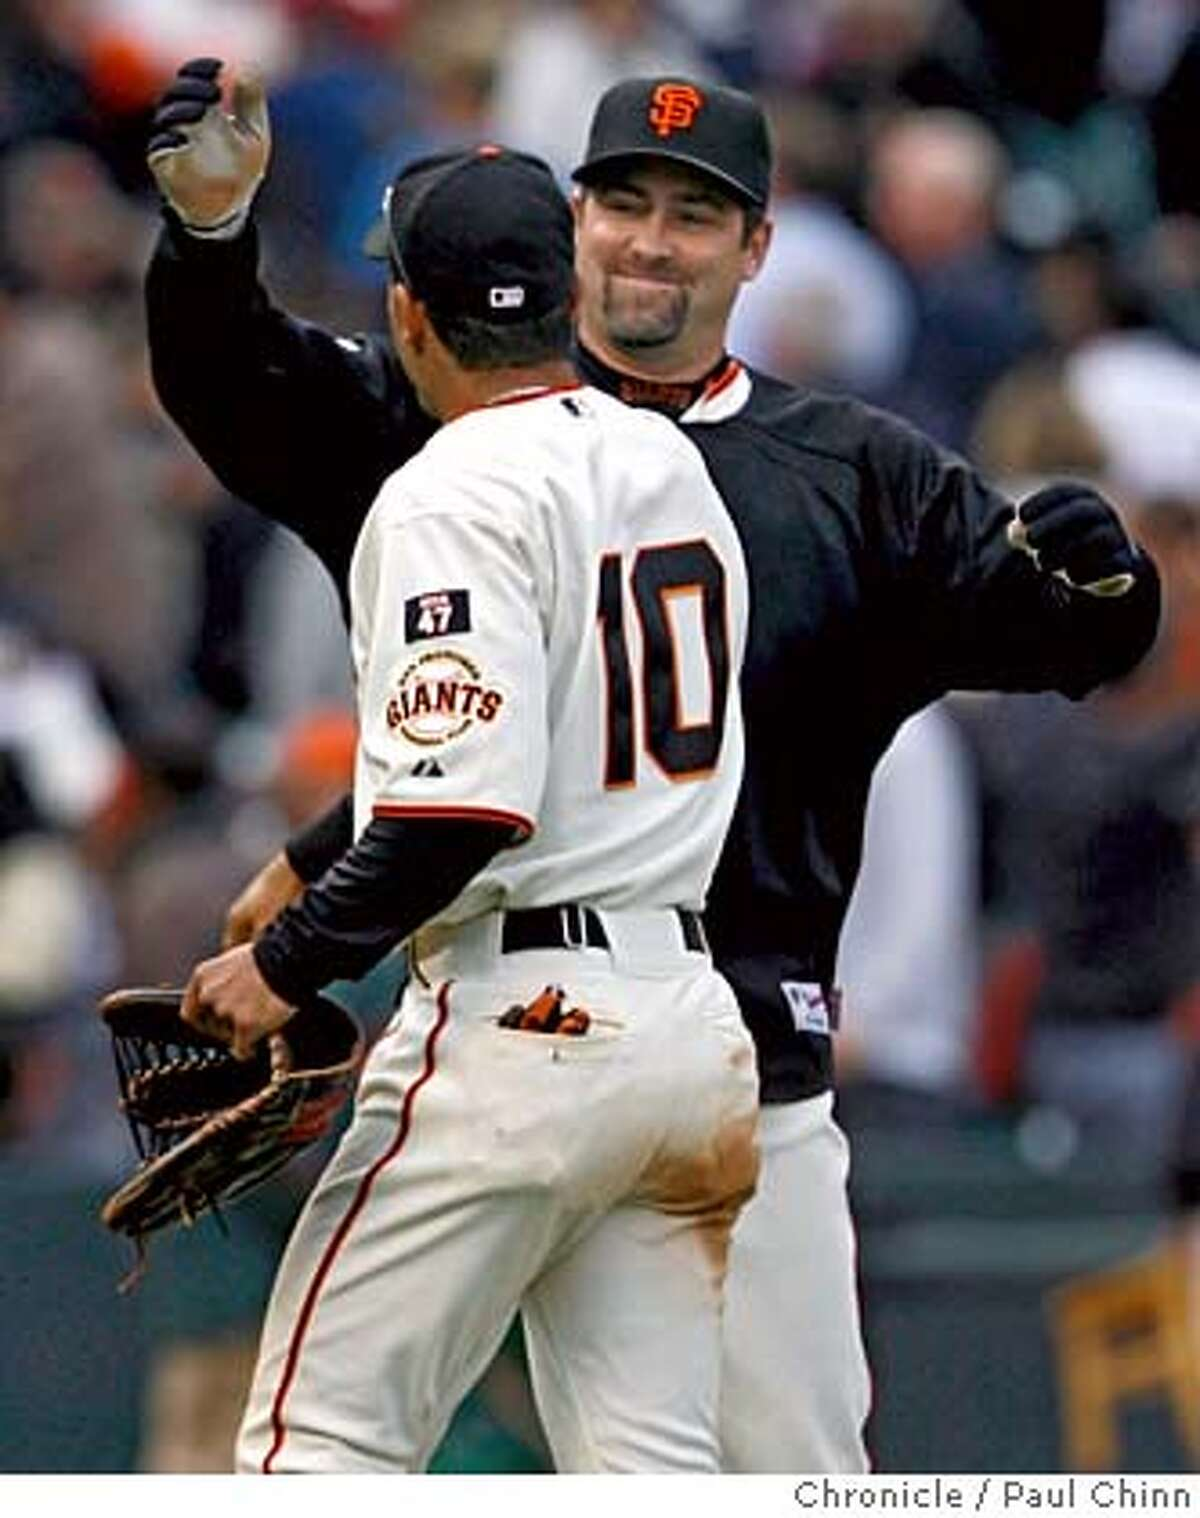 Rich Aurilia is about to embrace Dave Roberts on his 3 for 5, 2 RBI game in this file photo from July 26, 2007. The former Giants players are meeting on the field again at a 2016 Giants-Dodgers exhibition, with Aurilia as guest coach with the Giants training camp and Roberts as a Dodgers manager.